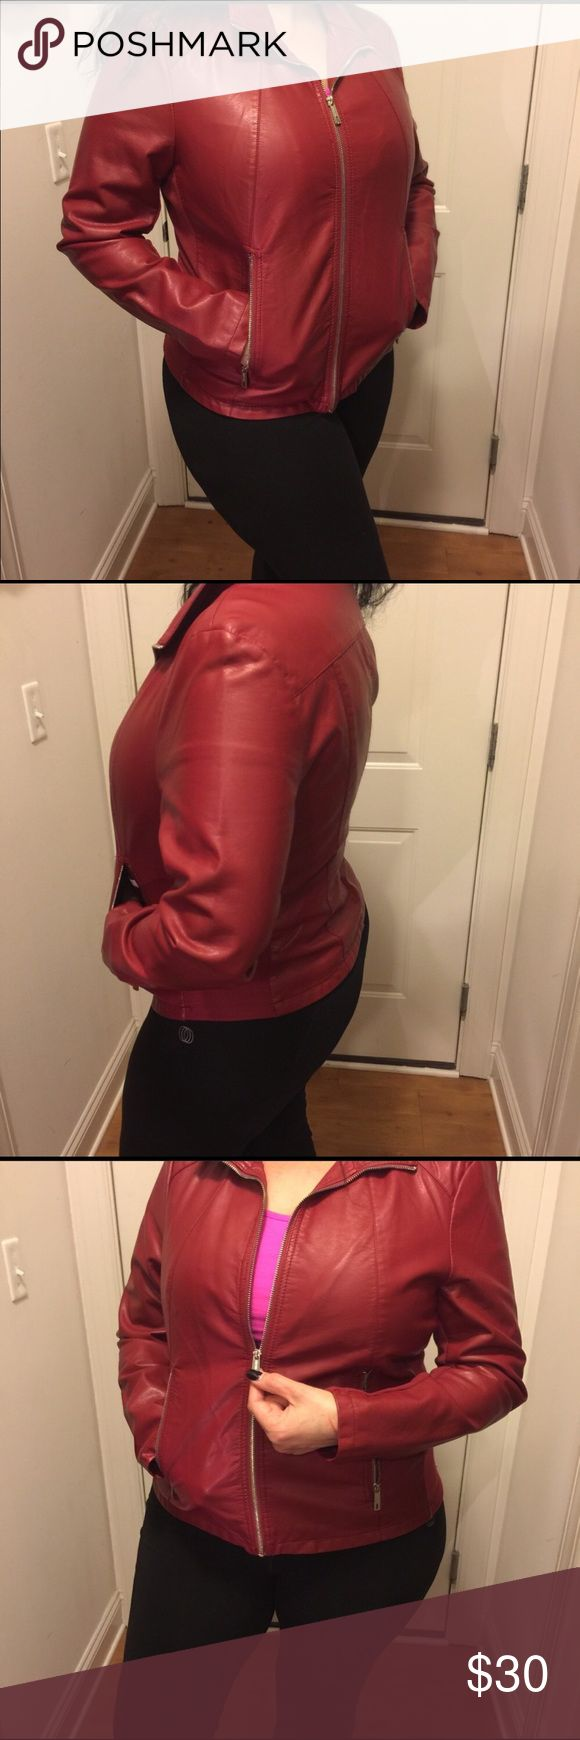 Kenneth Cole Faux Leather Jacket in mint condition Gorgeous red faux leather jacket that can be worn with anything.  I've used this jacket a couple of times only and looks brand new.   It can be worn in a black outfit or with virtually anything.  Beautiful color. Kenneth Cole Jackets & Coats Utility Jackets